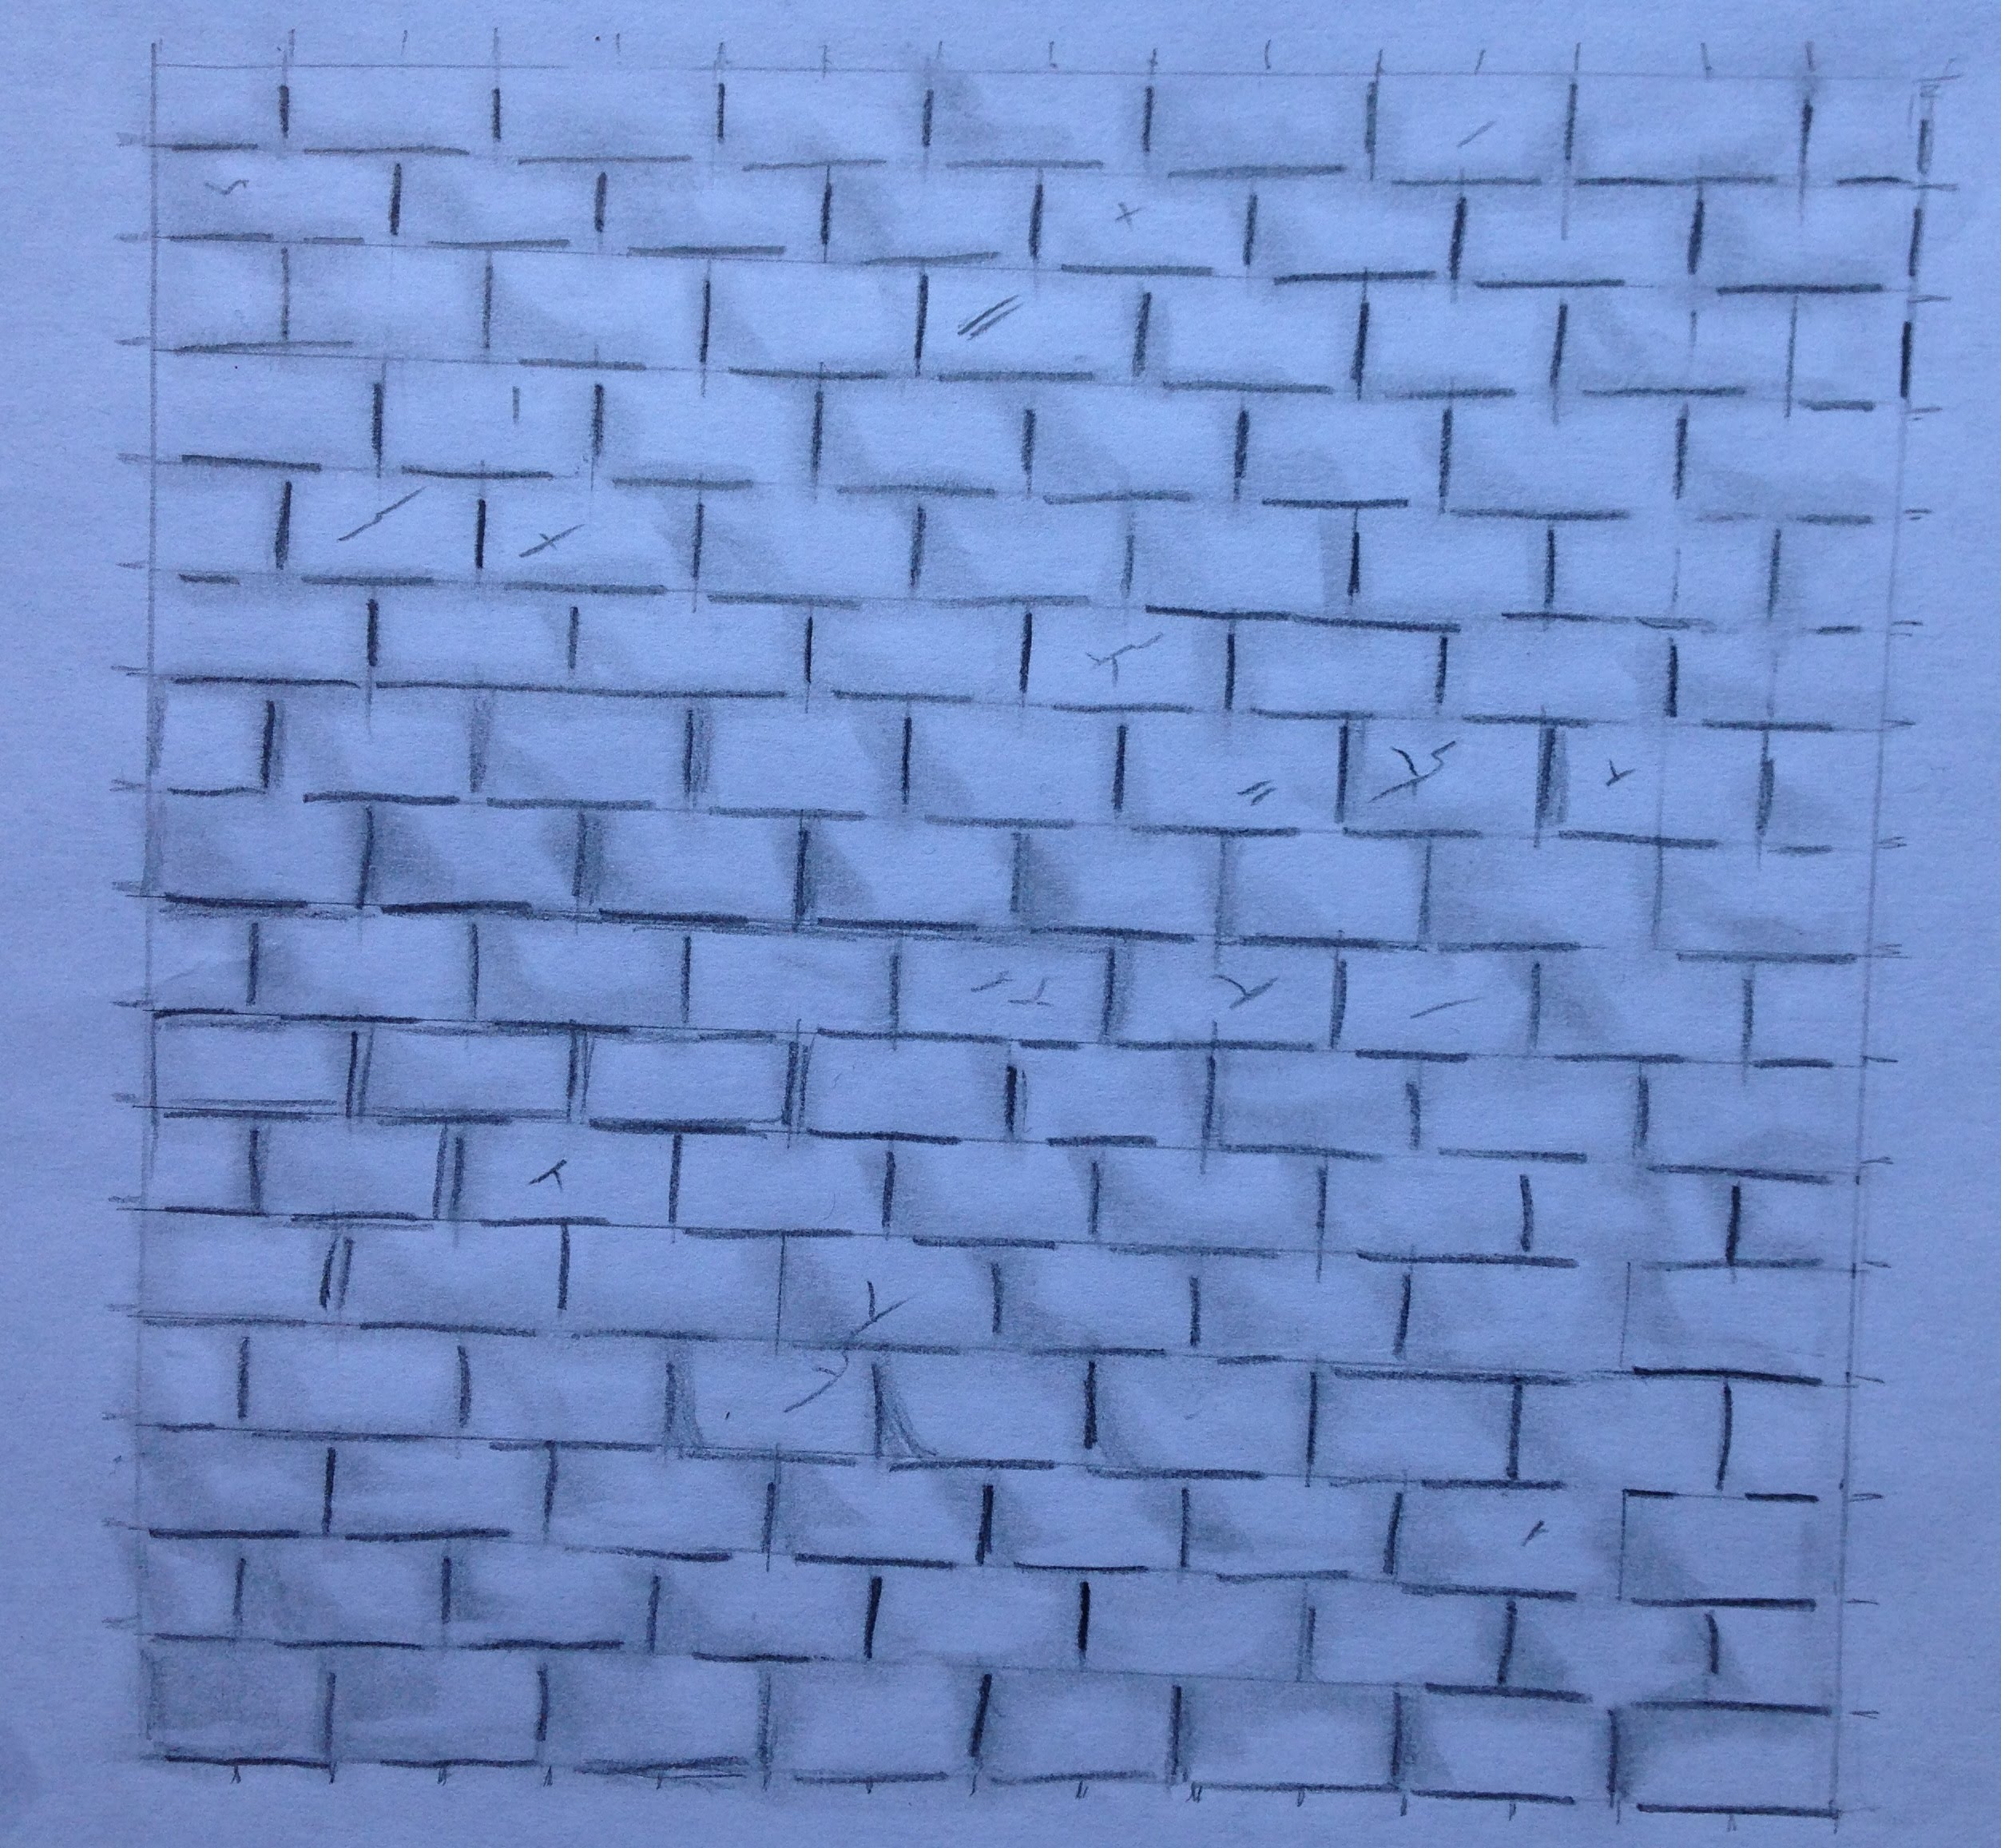 How to Draw a Brick Wall Step by Step - YouTube